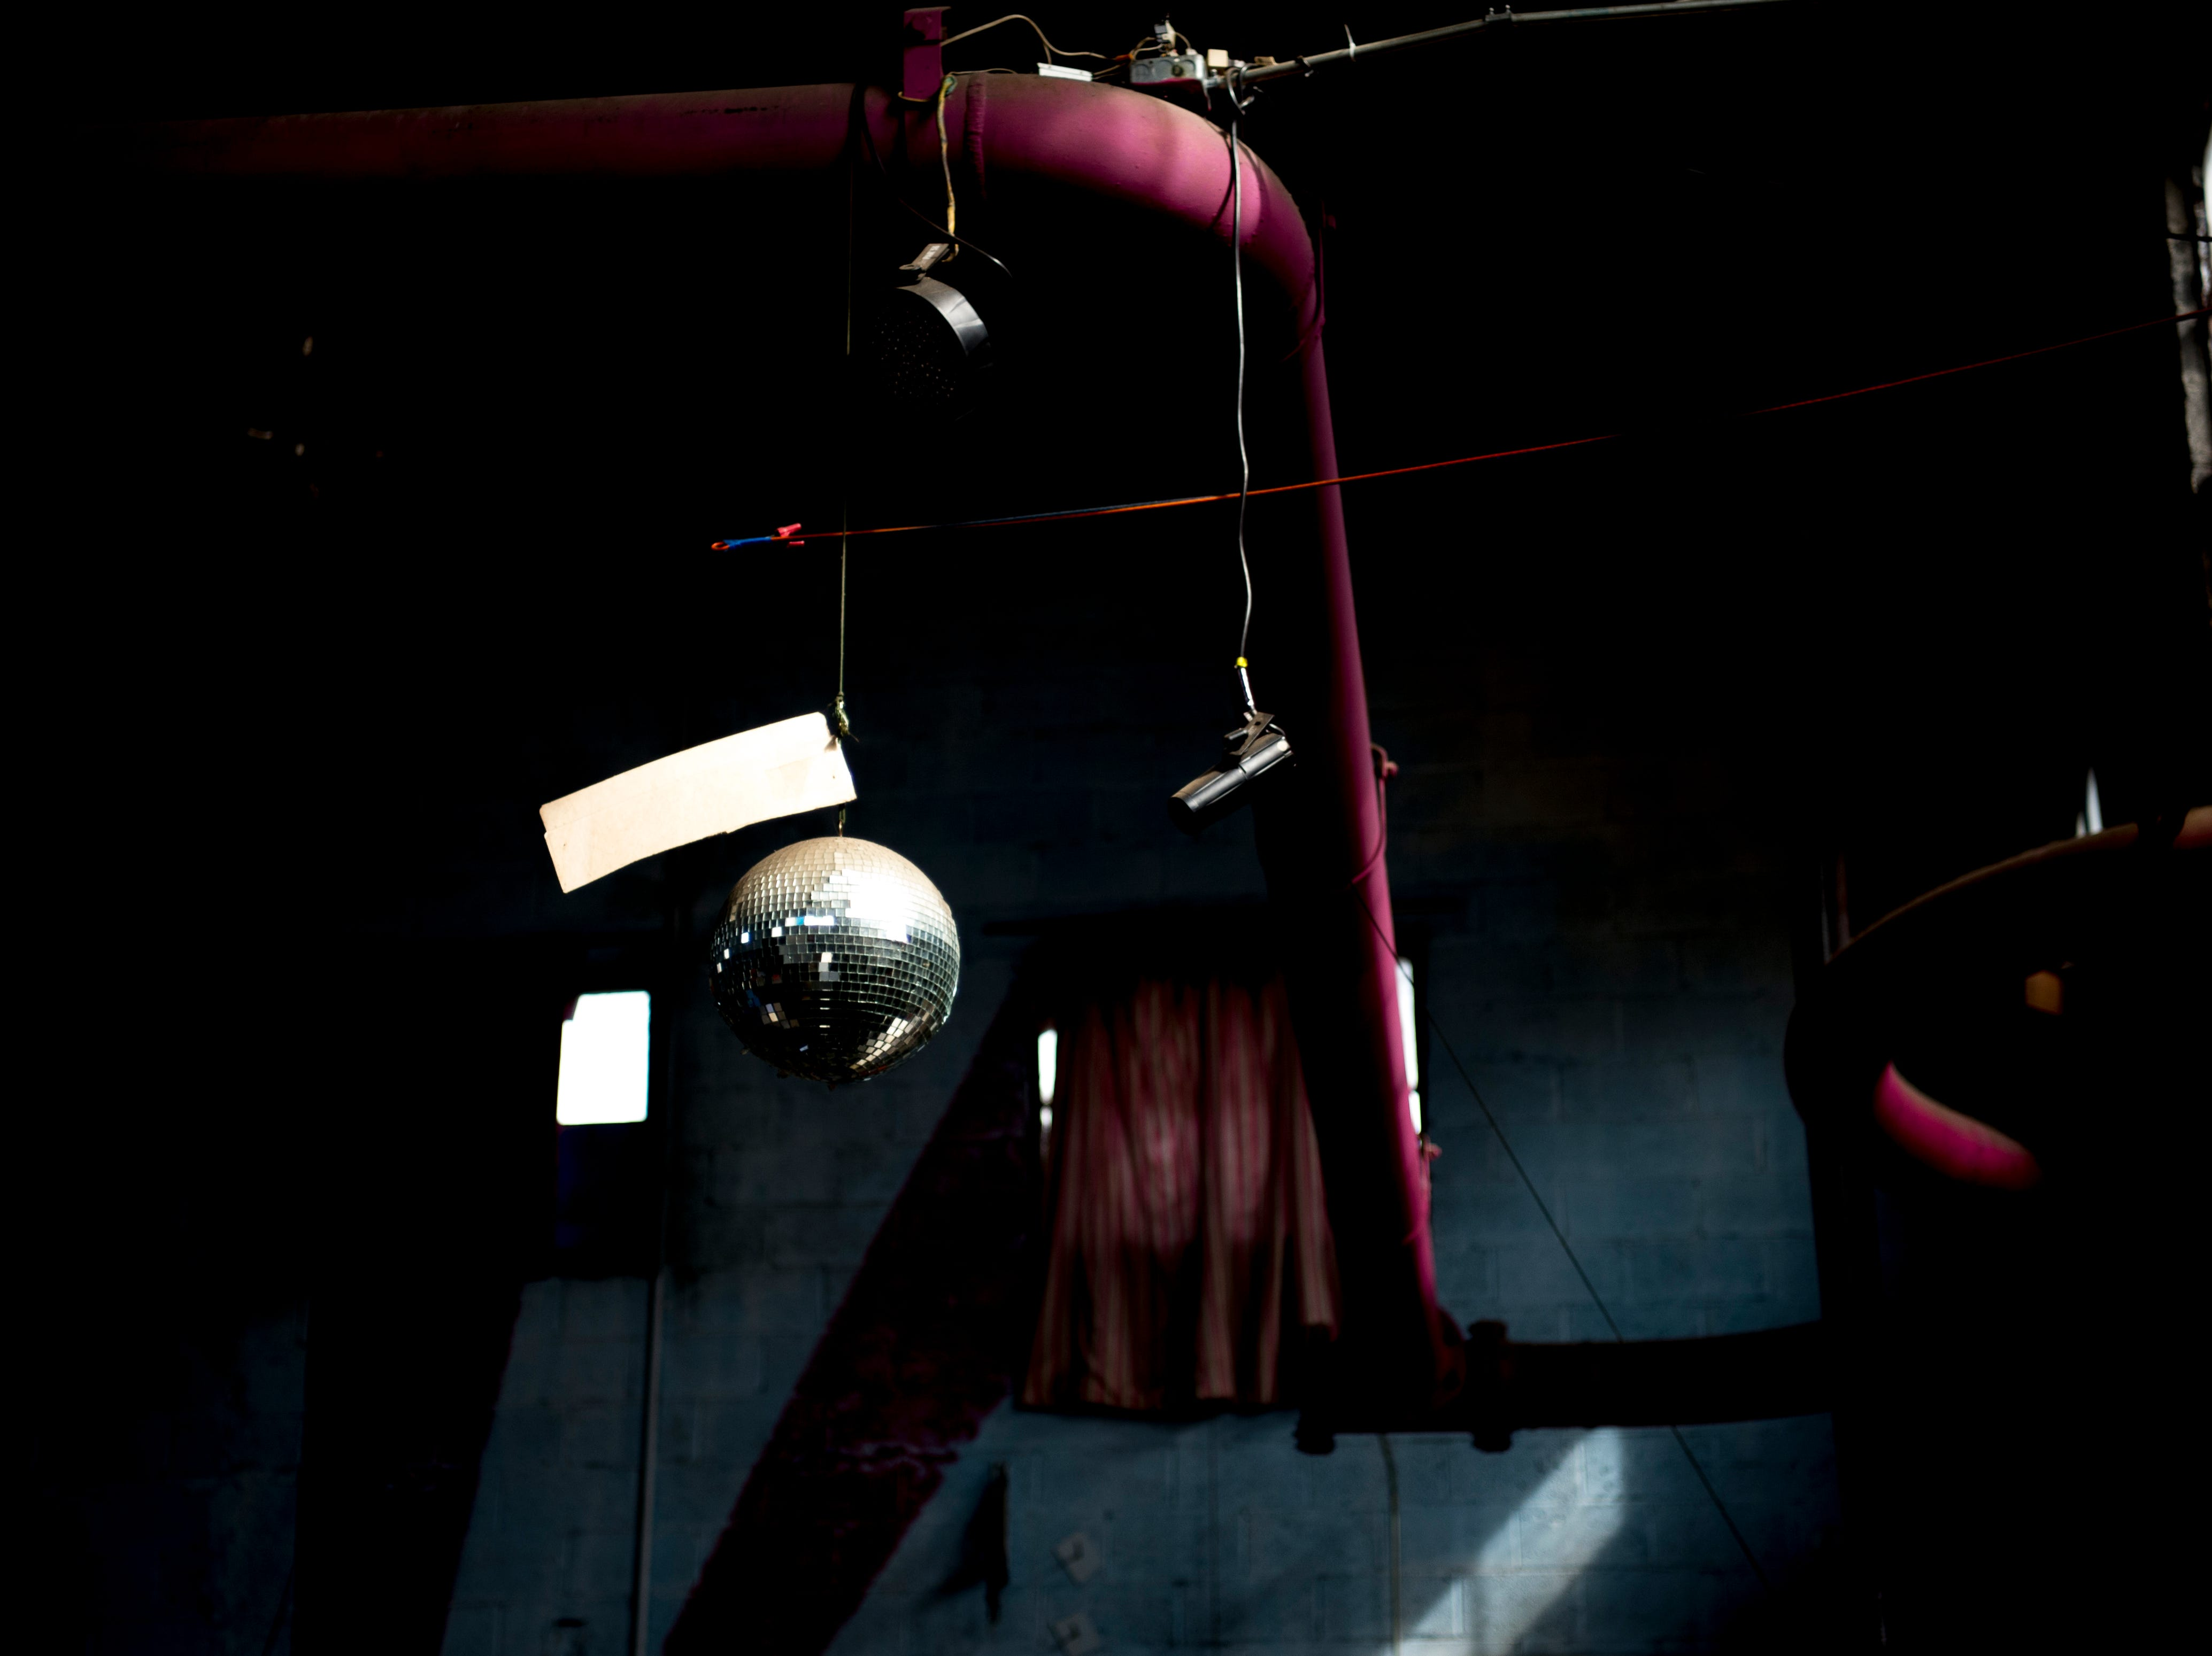 A disco ball hangs from the ceiling at Bar Marley in Knoxville, Tennessee on Thursday, February 14, 2019. The Caribbean-themed Bar Marley is facing possible acquisition and condemnation by KCDC due to code violations.